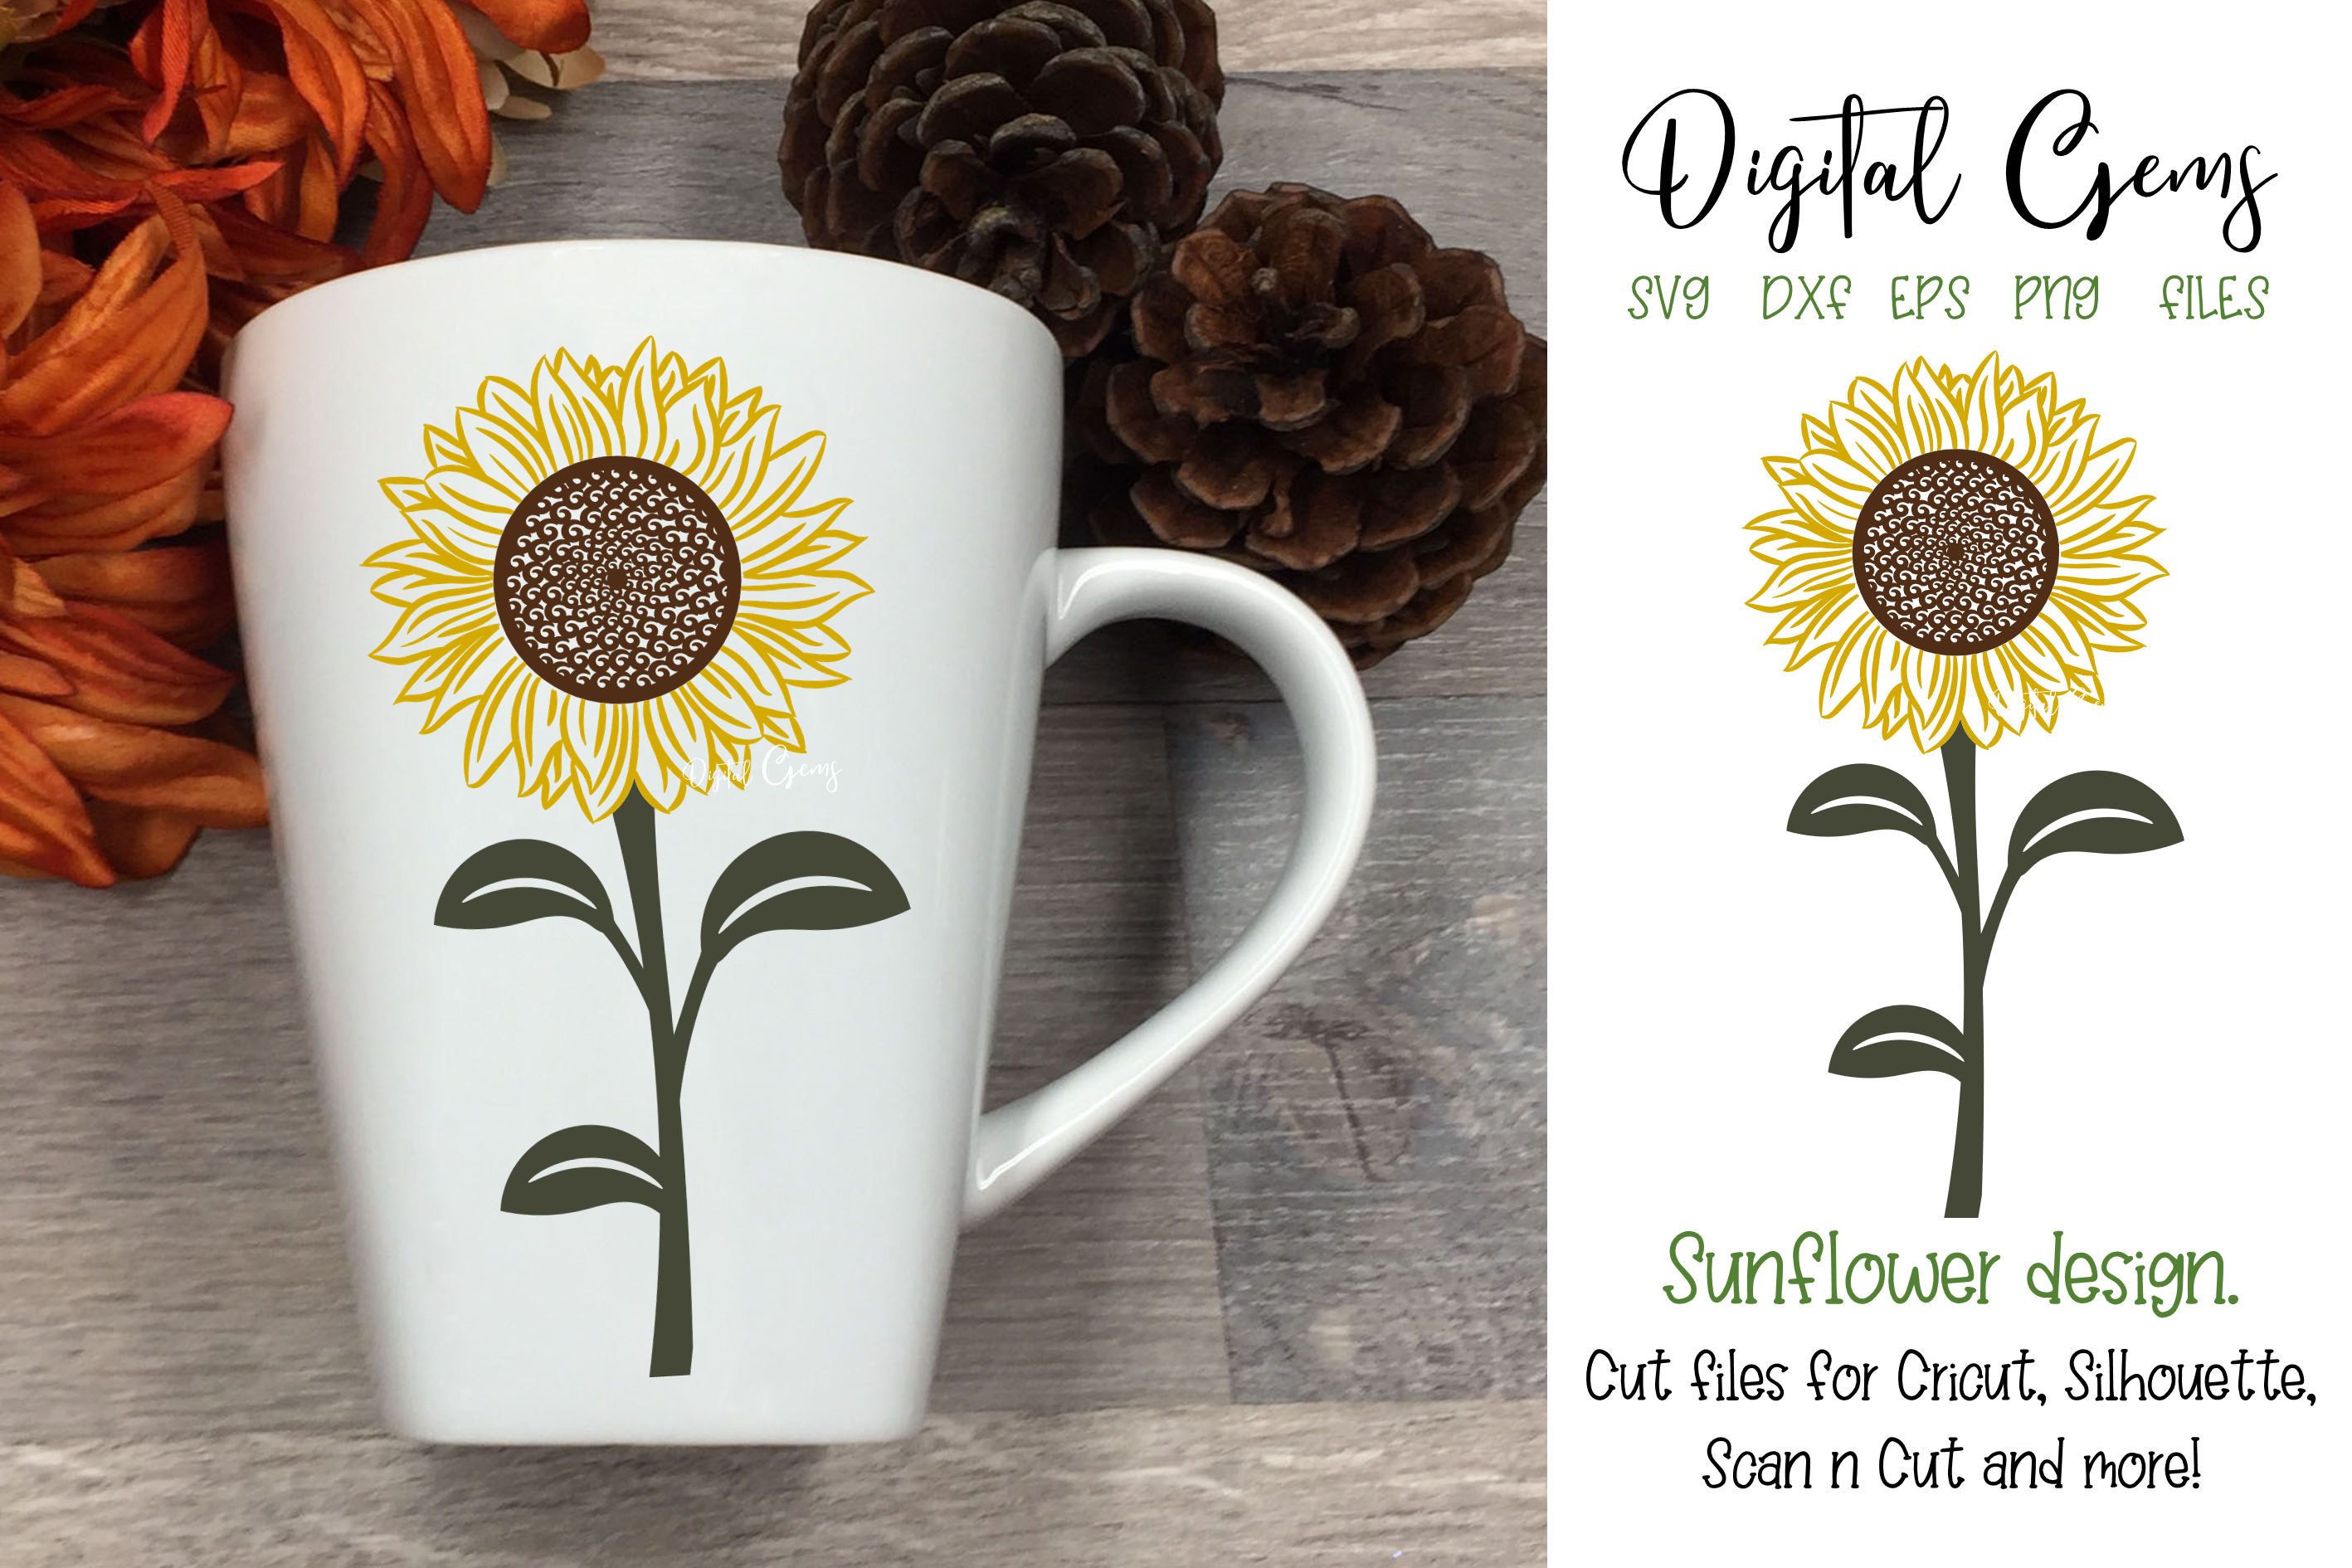 Download Free Sunflower Design Graphic By Digital Gems Creative Fabrica for Cricut Explore, Silhouette and other cutting machines.